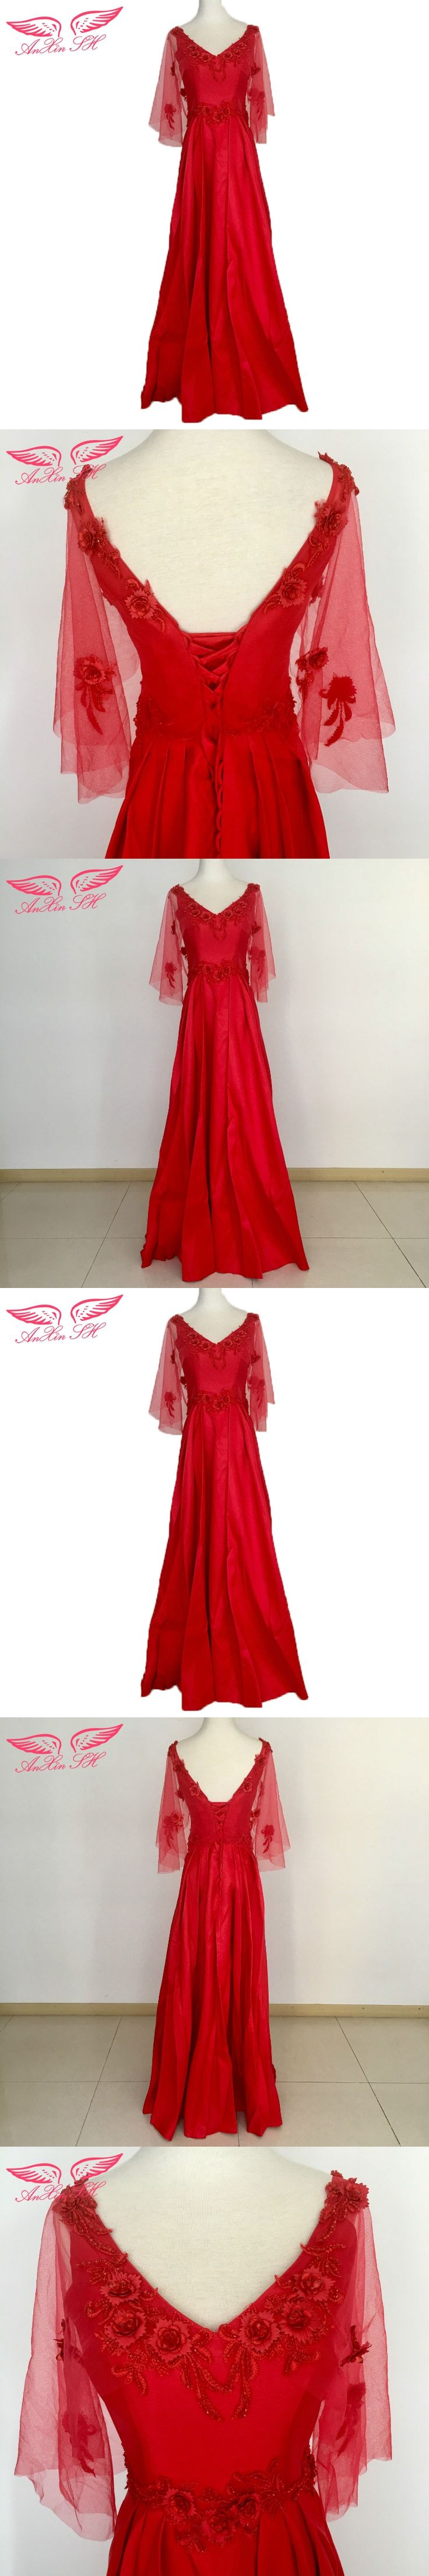 AnXin SH Red flower evening dress red rose lace evening dress princess flower evening dress 100% Real Pictures 2201